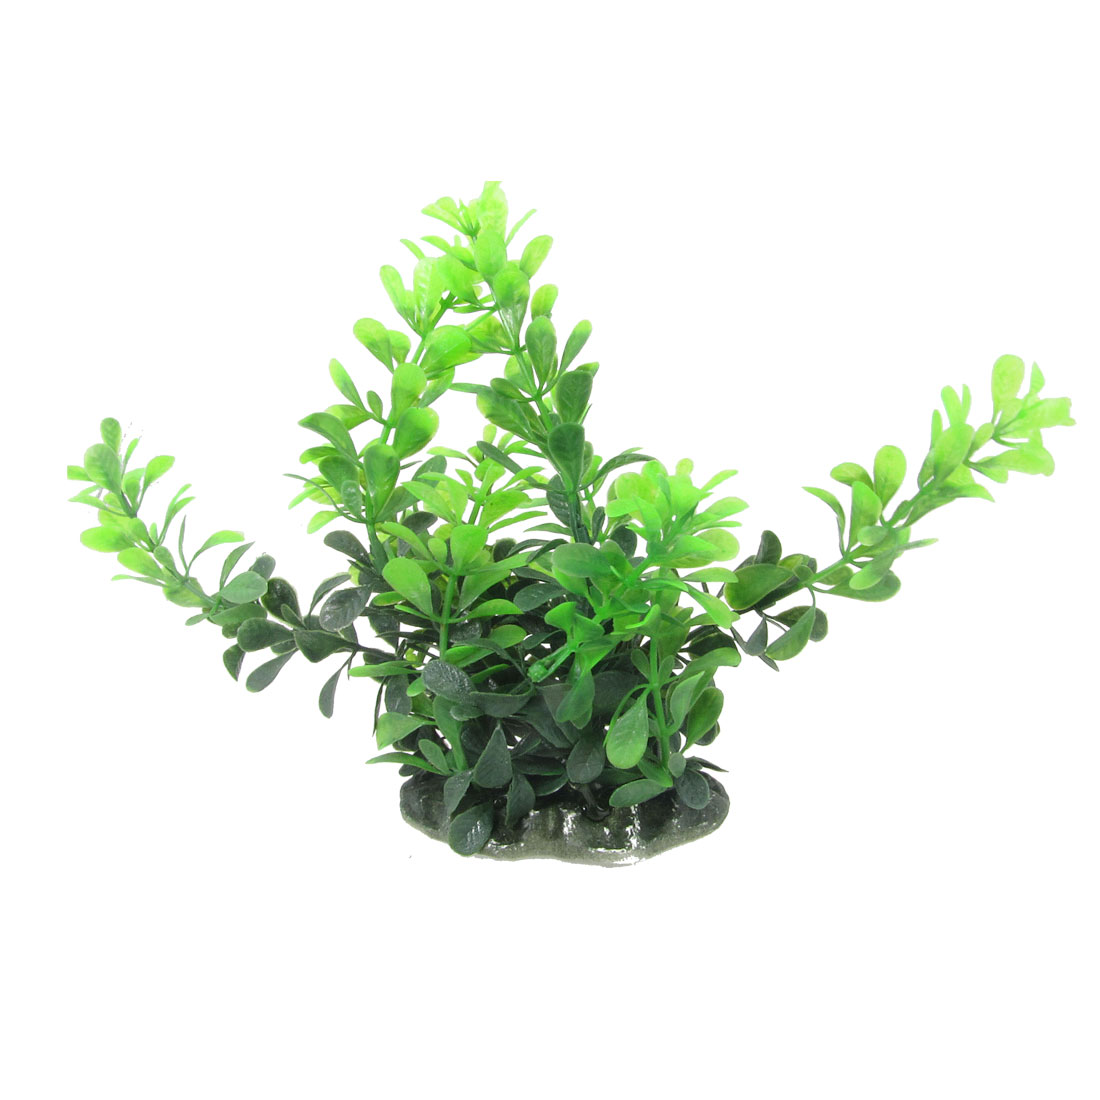 Aquarium Aquascaping Green Plastic Simulation Plant 6.7""